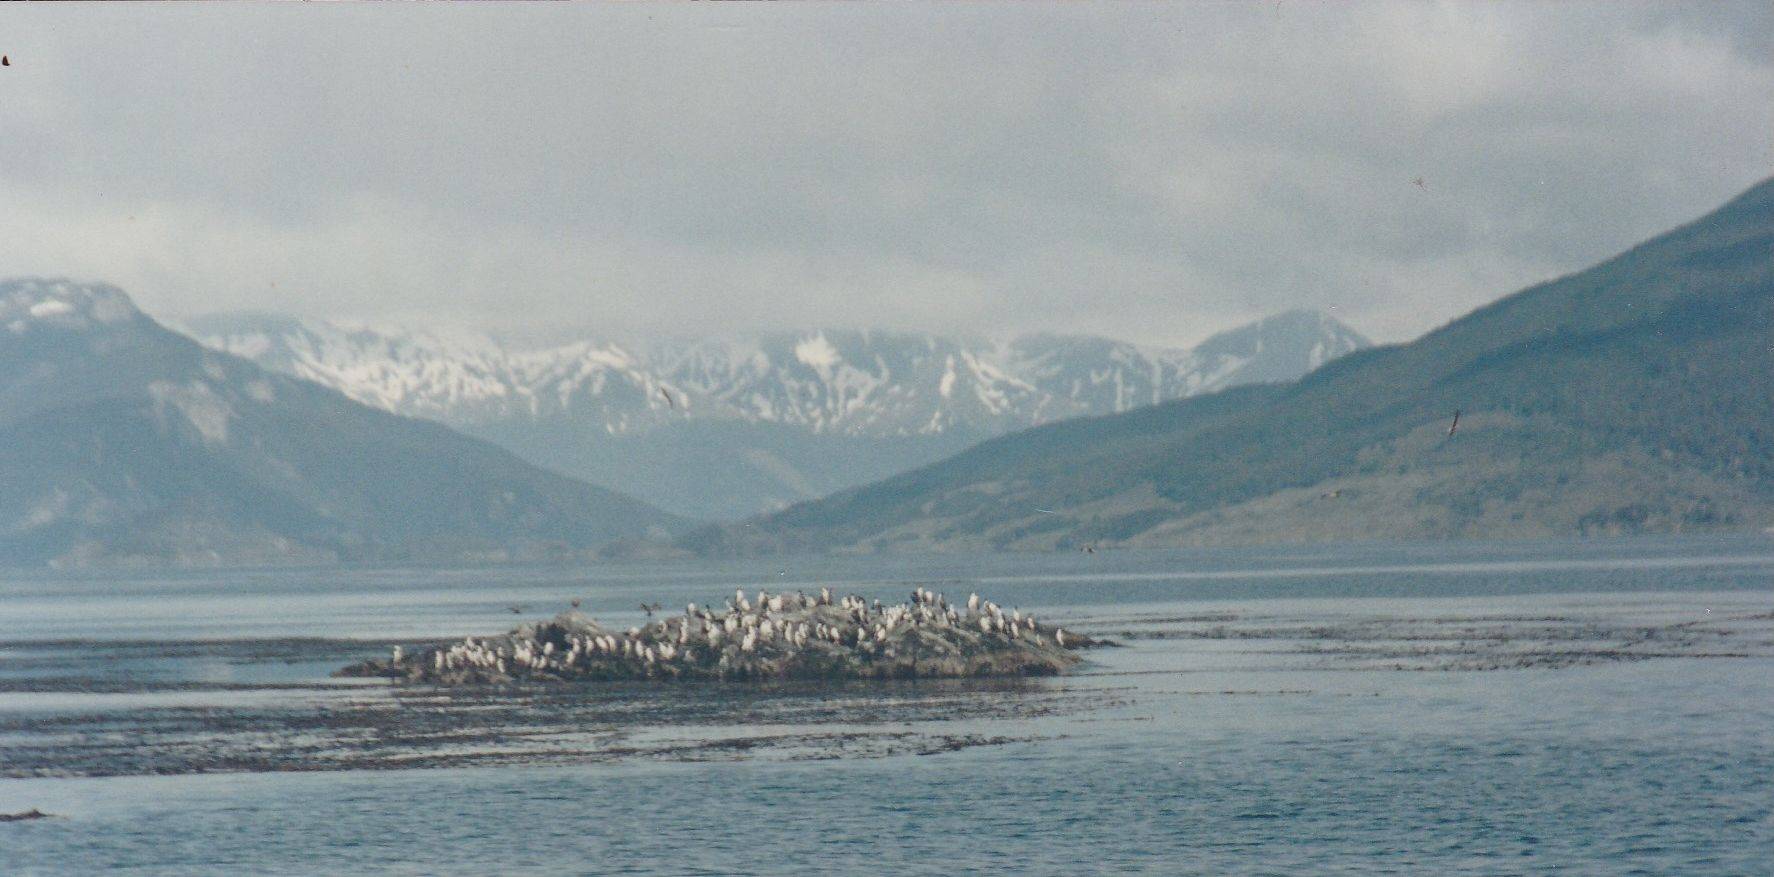 Out In The Beagle Channel Outside Ushuaia Southern Cone Tierra